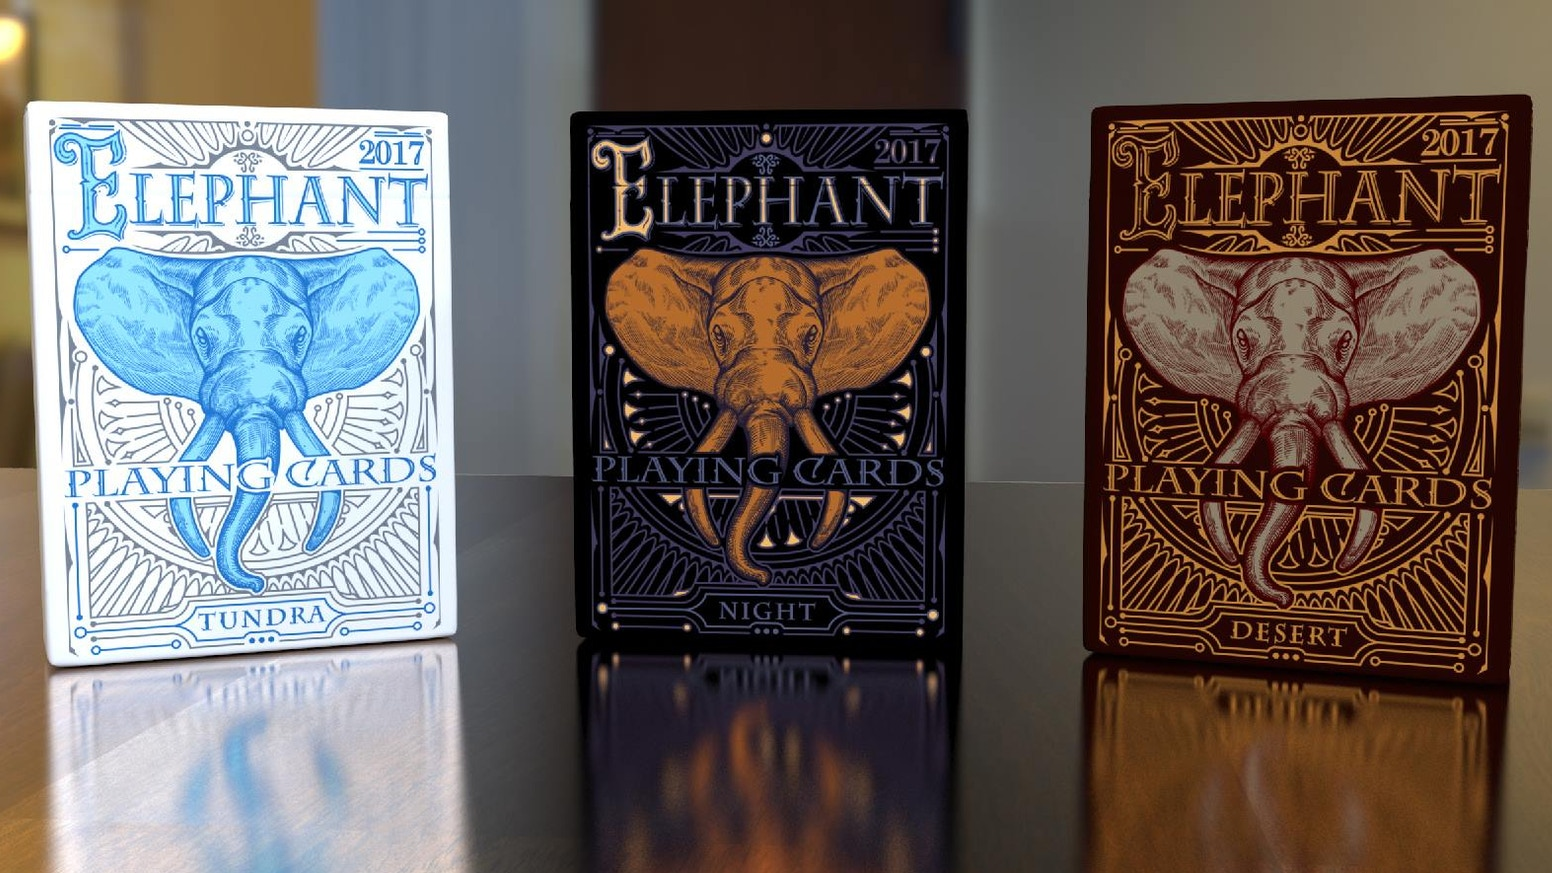 Custom poker size playing cards. Embodying the majesty of the mighty Elephant, these cards are designed with a timeless beauty.